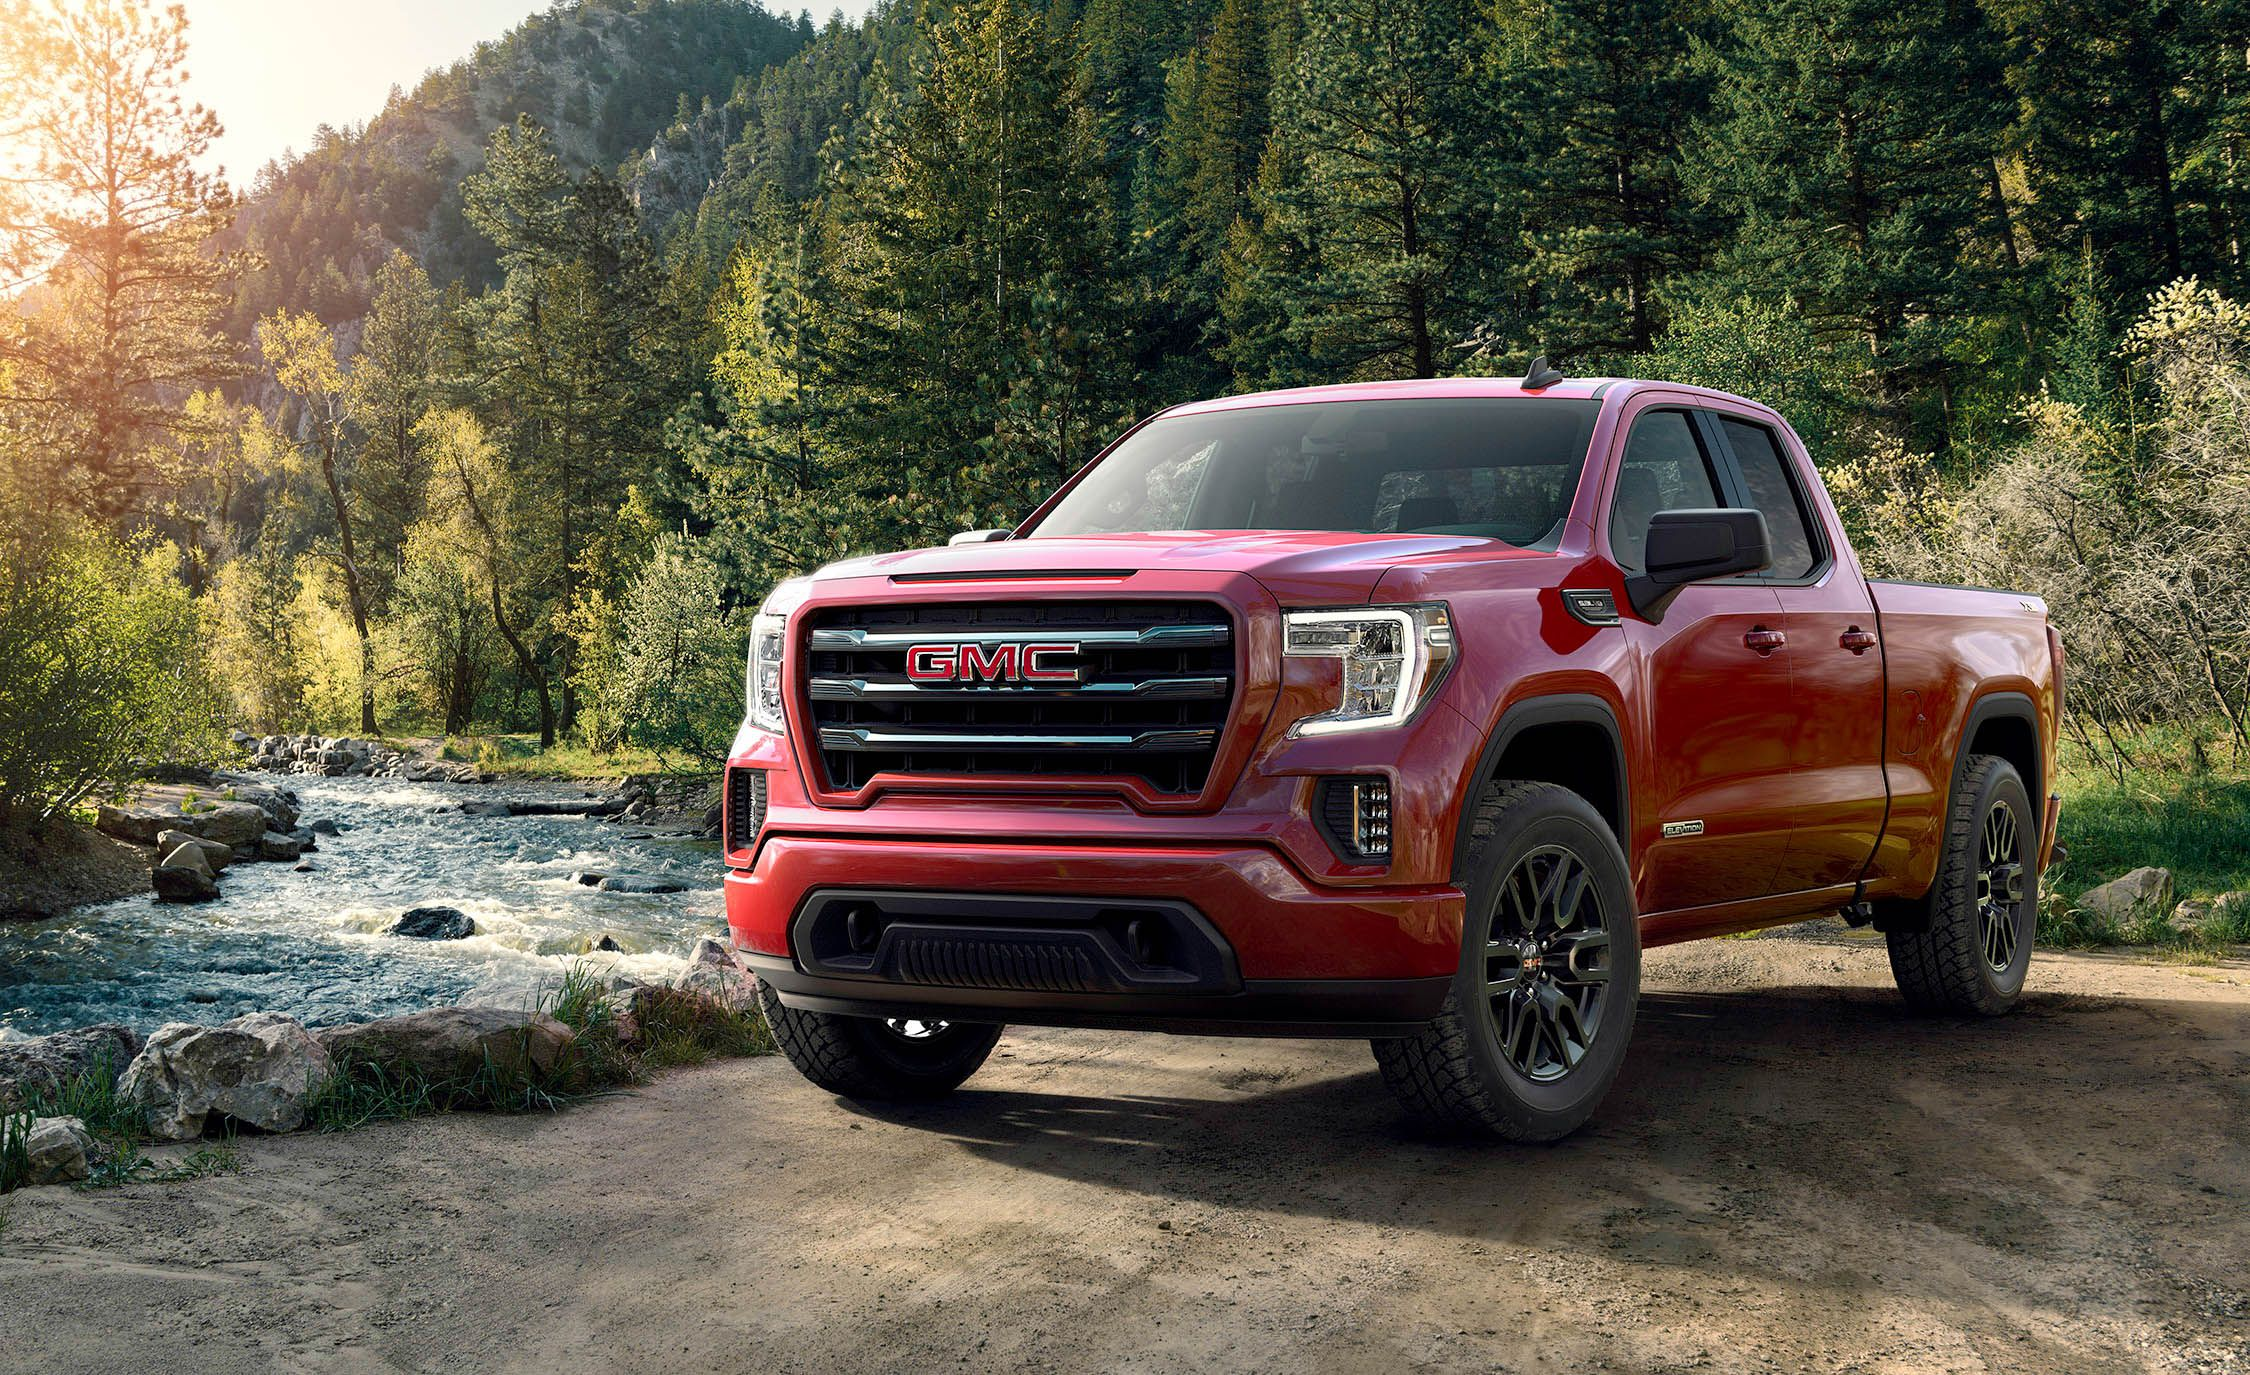 Small Chevy Suv >> 2019 GMC Sierra Elevation to Offer Turbocharged Four-Cylinder Engine | News | Car and Driver